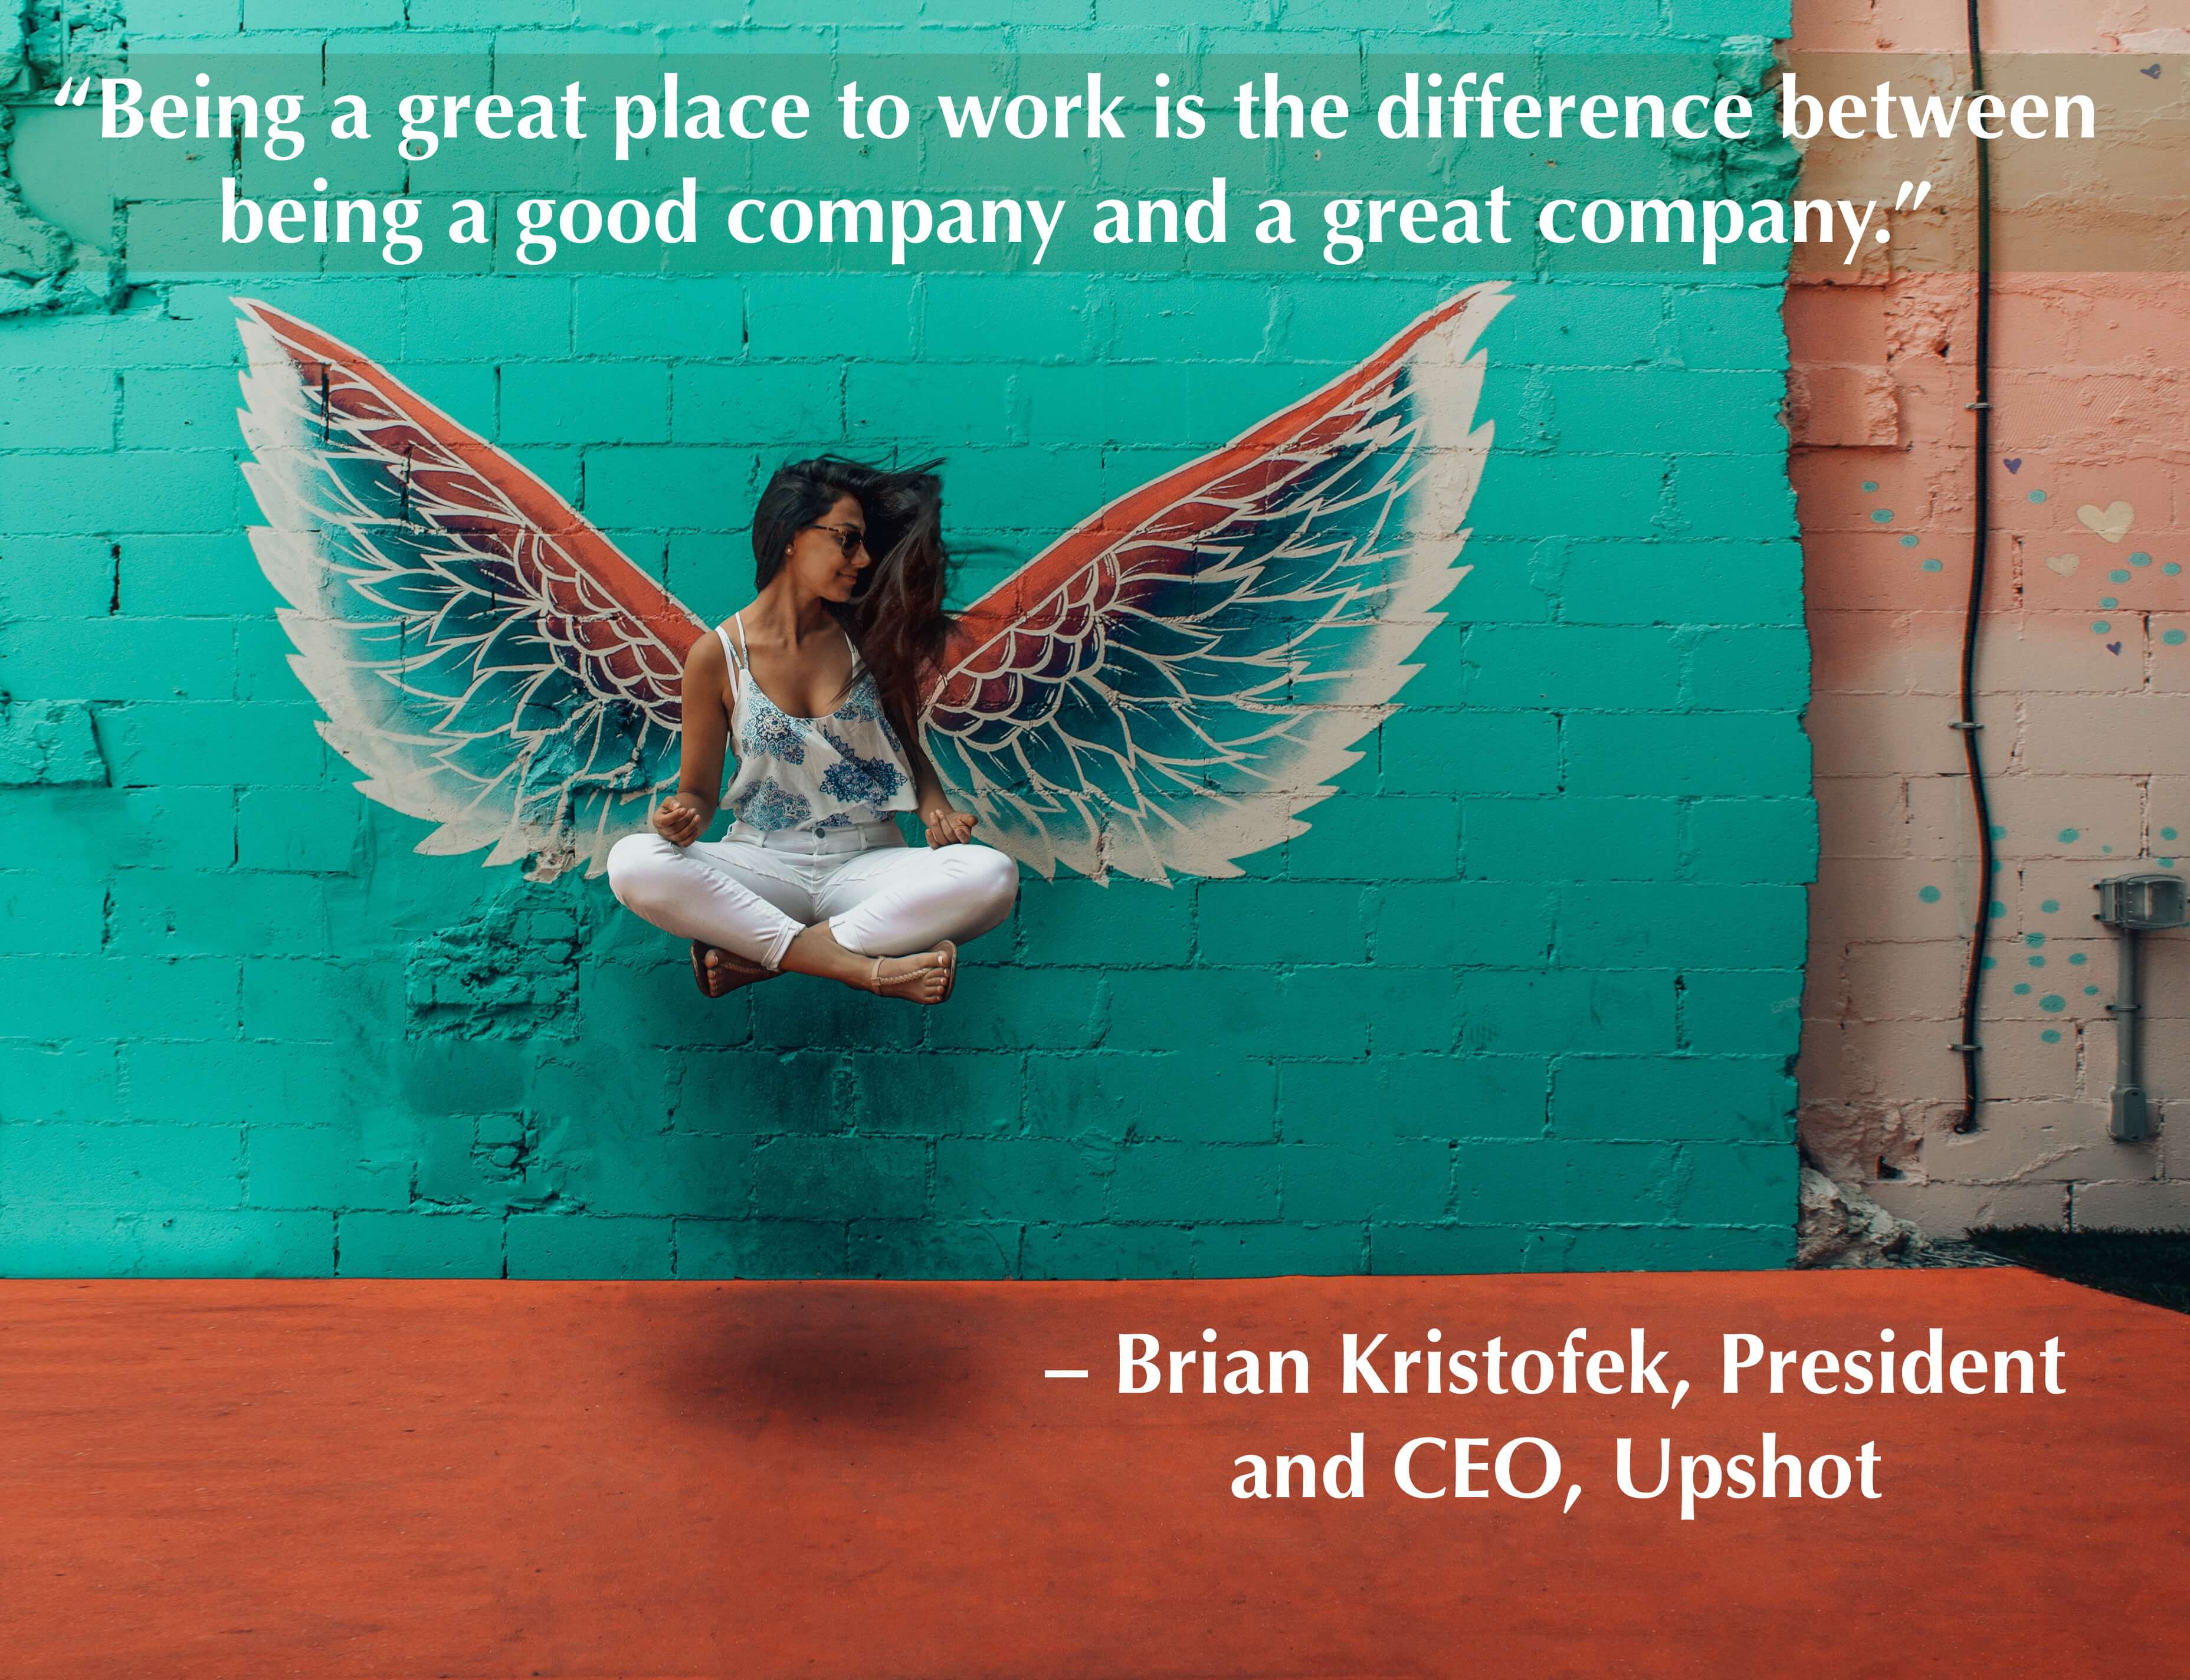 """Being a great place to work is the difference between being a good company and a great company."" – Brian Kristofek, President and CEO, Upshot"